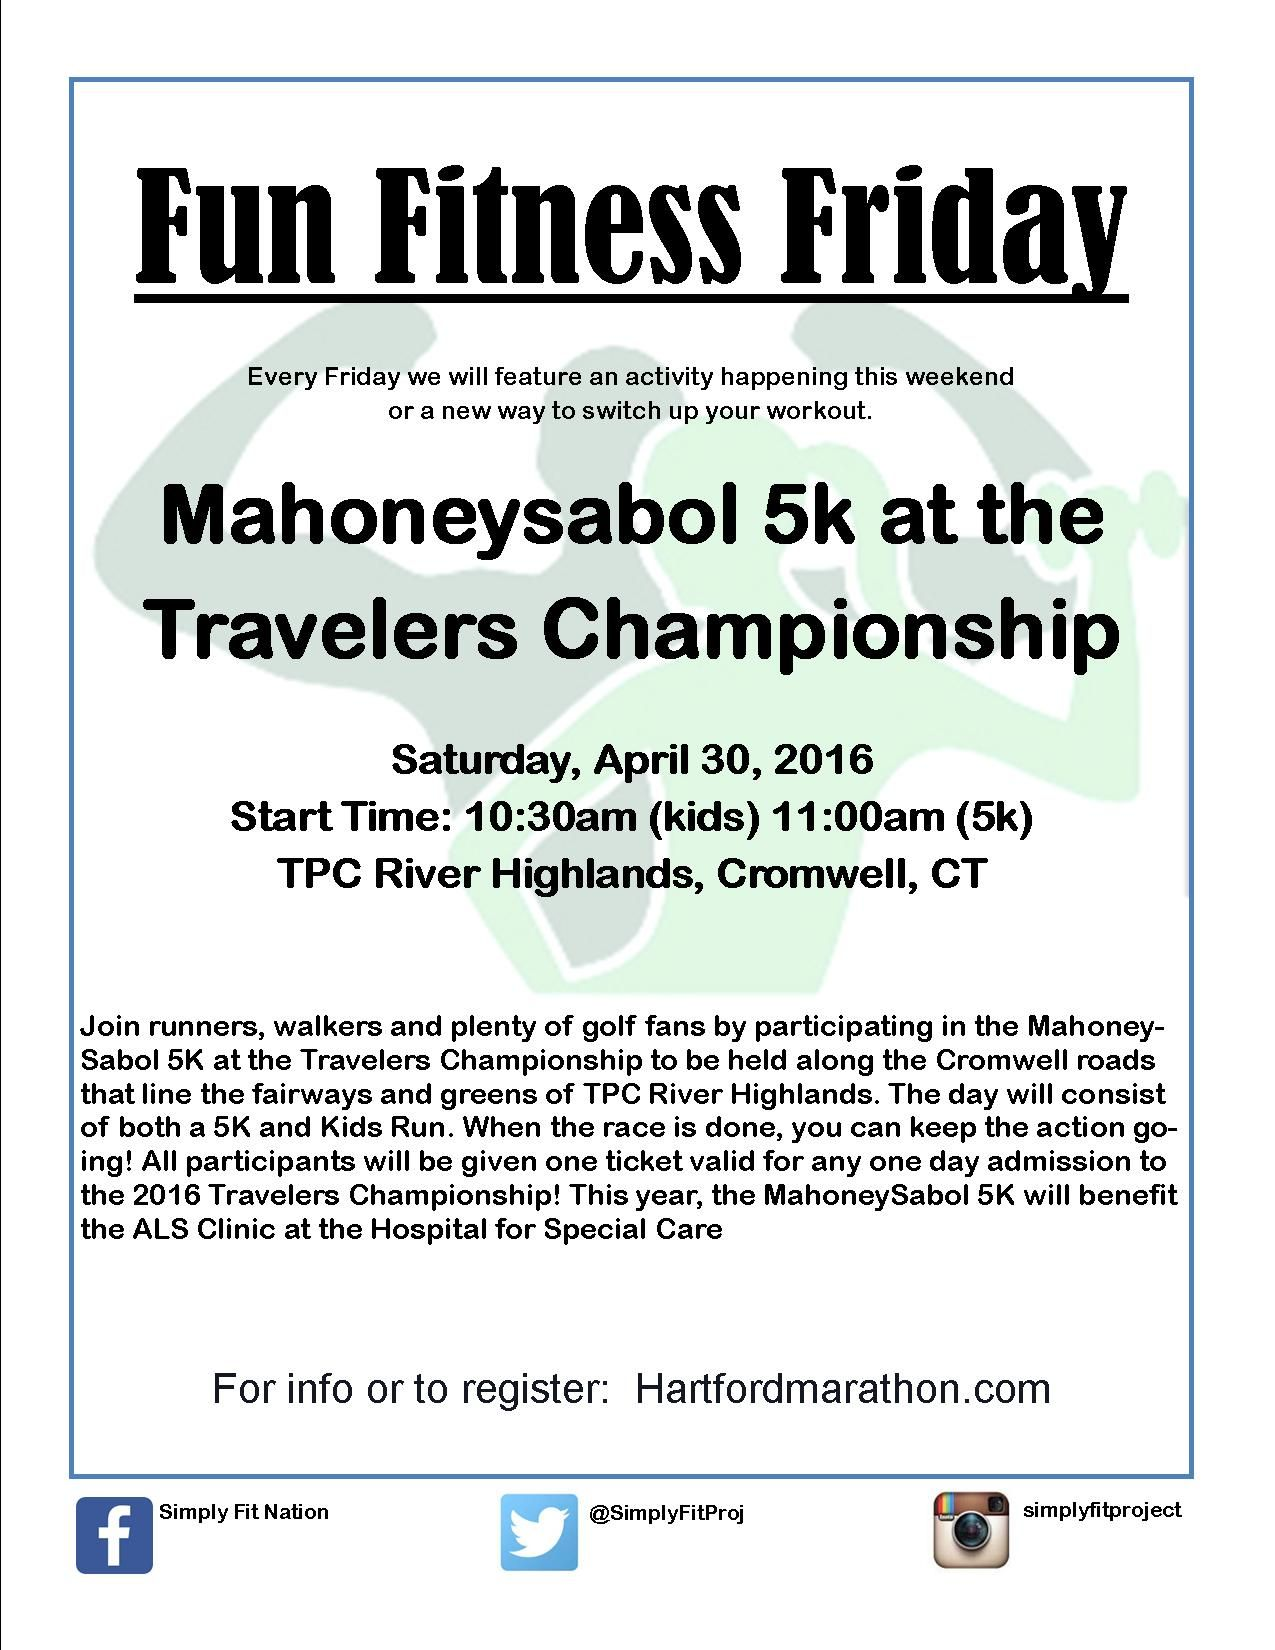 Fun Fitness Fridays will focus on local activities and workouts to